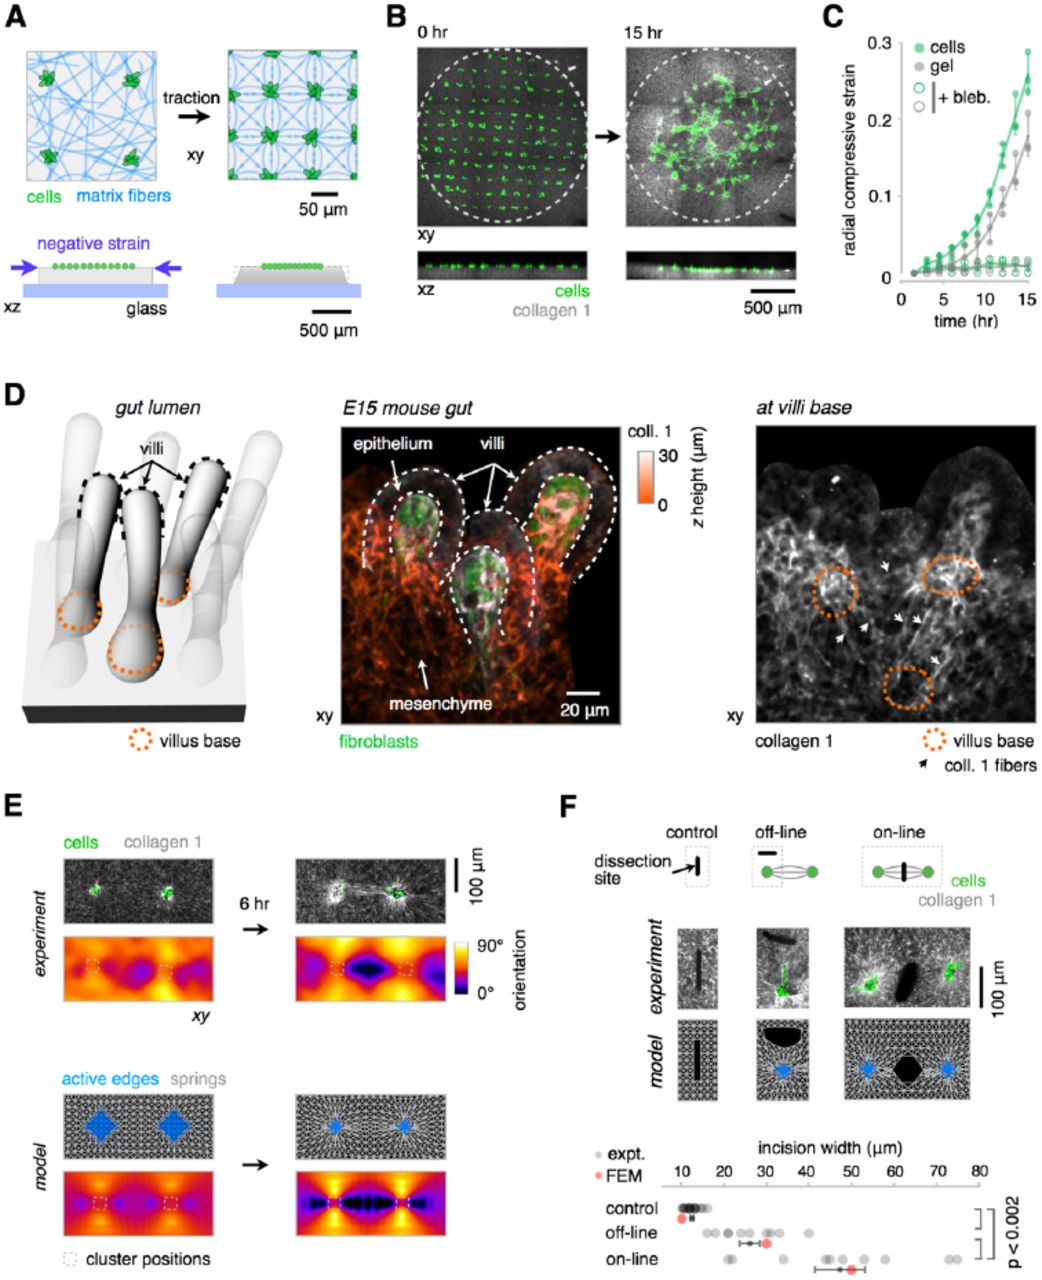 Tissue Folding by Mechanical Compaction of the Mesenchyme | bioRxiv